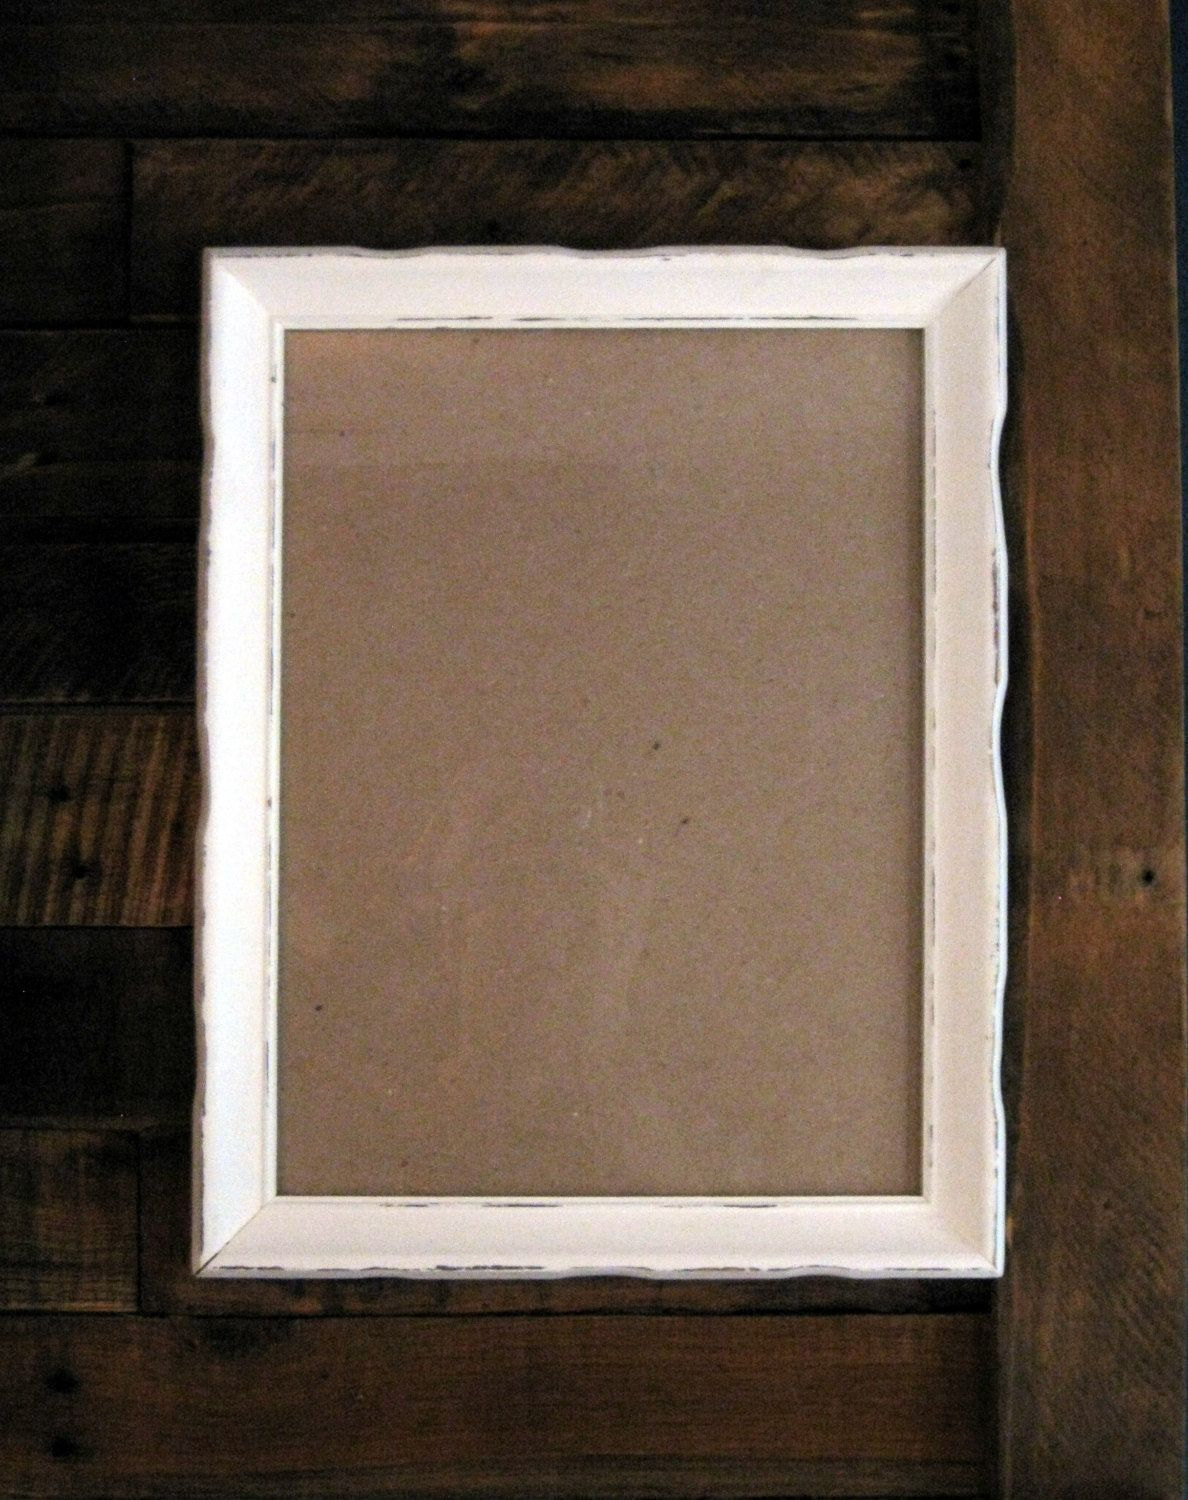 Shabby Chic Frame 12 X 16 White Frame Hand Painted Wood Frame 12 X 16 Picture Frame With Glass Cust Shabby Chic Frames Hand Painted Wood White Frame